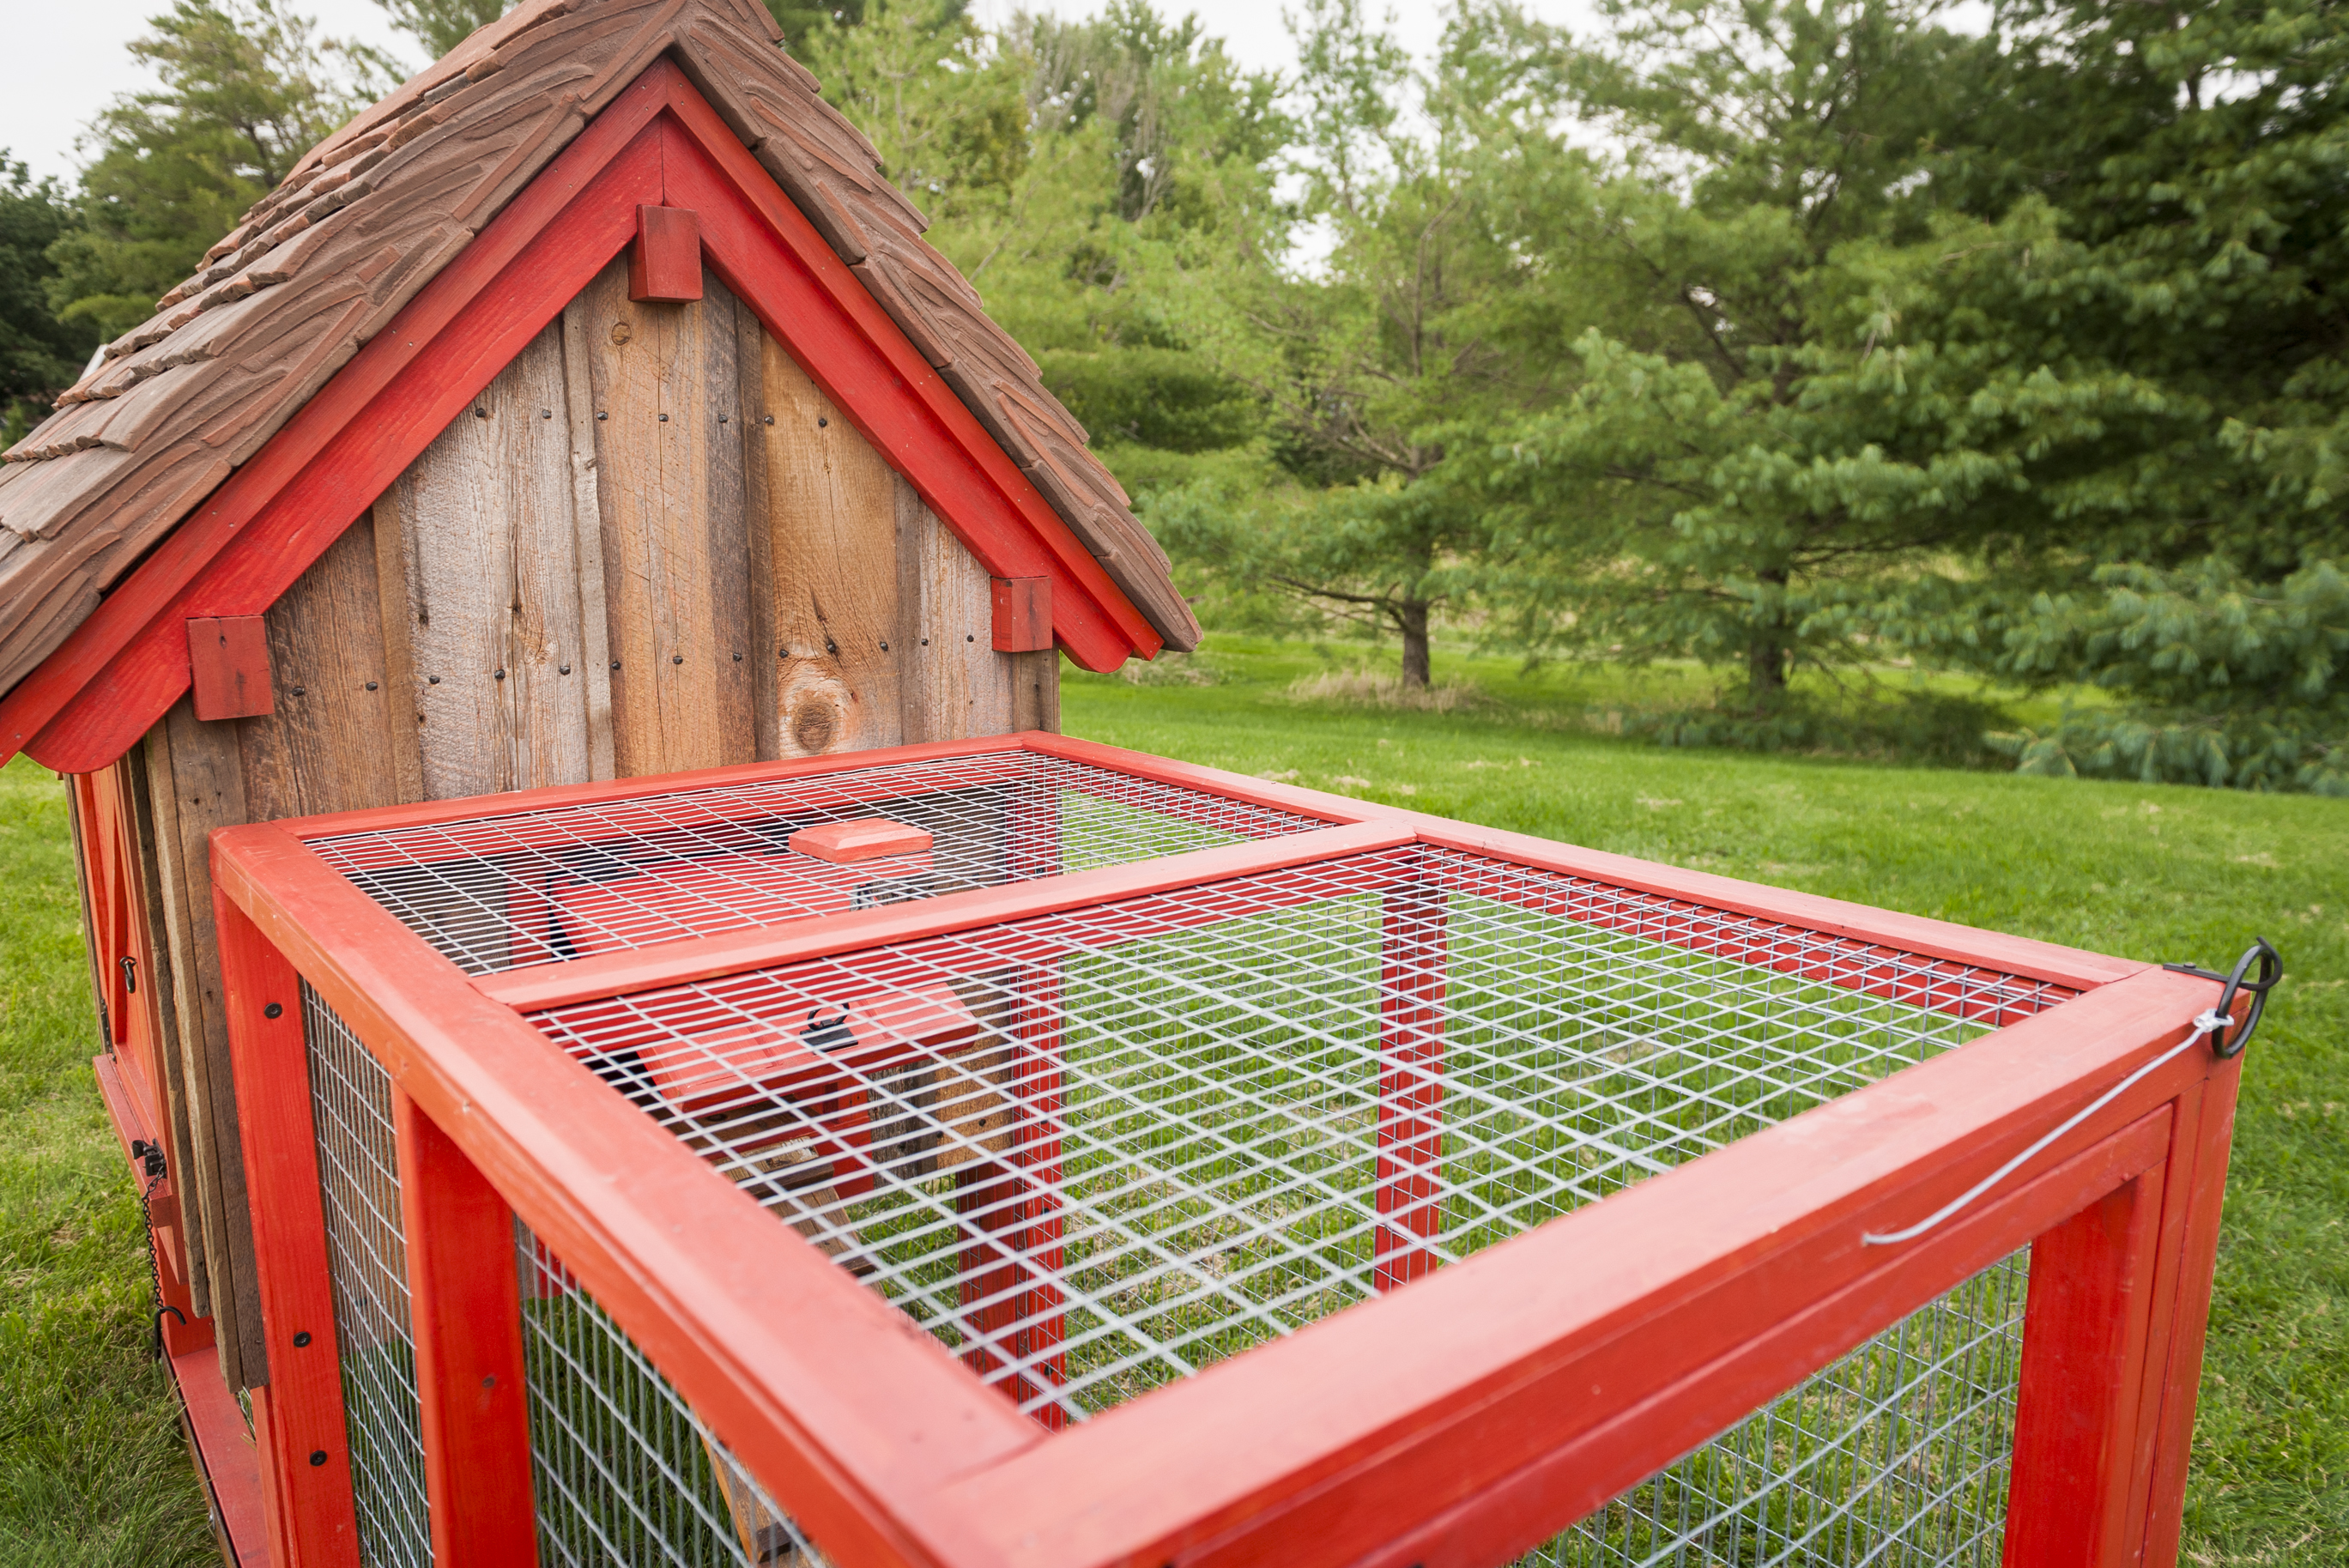 Chicken Coop Old Farm No 1 Teracottage